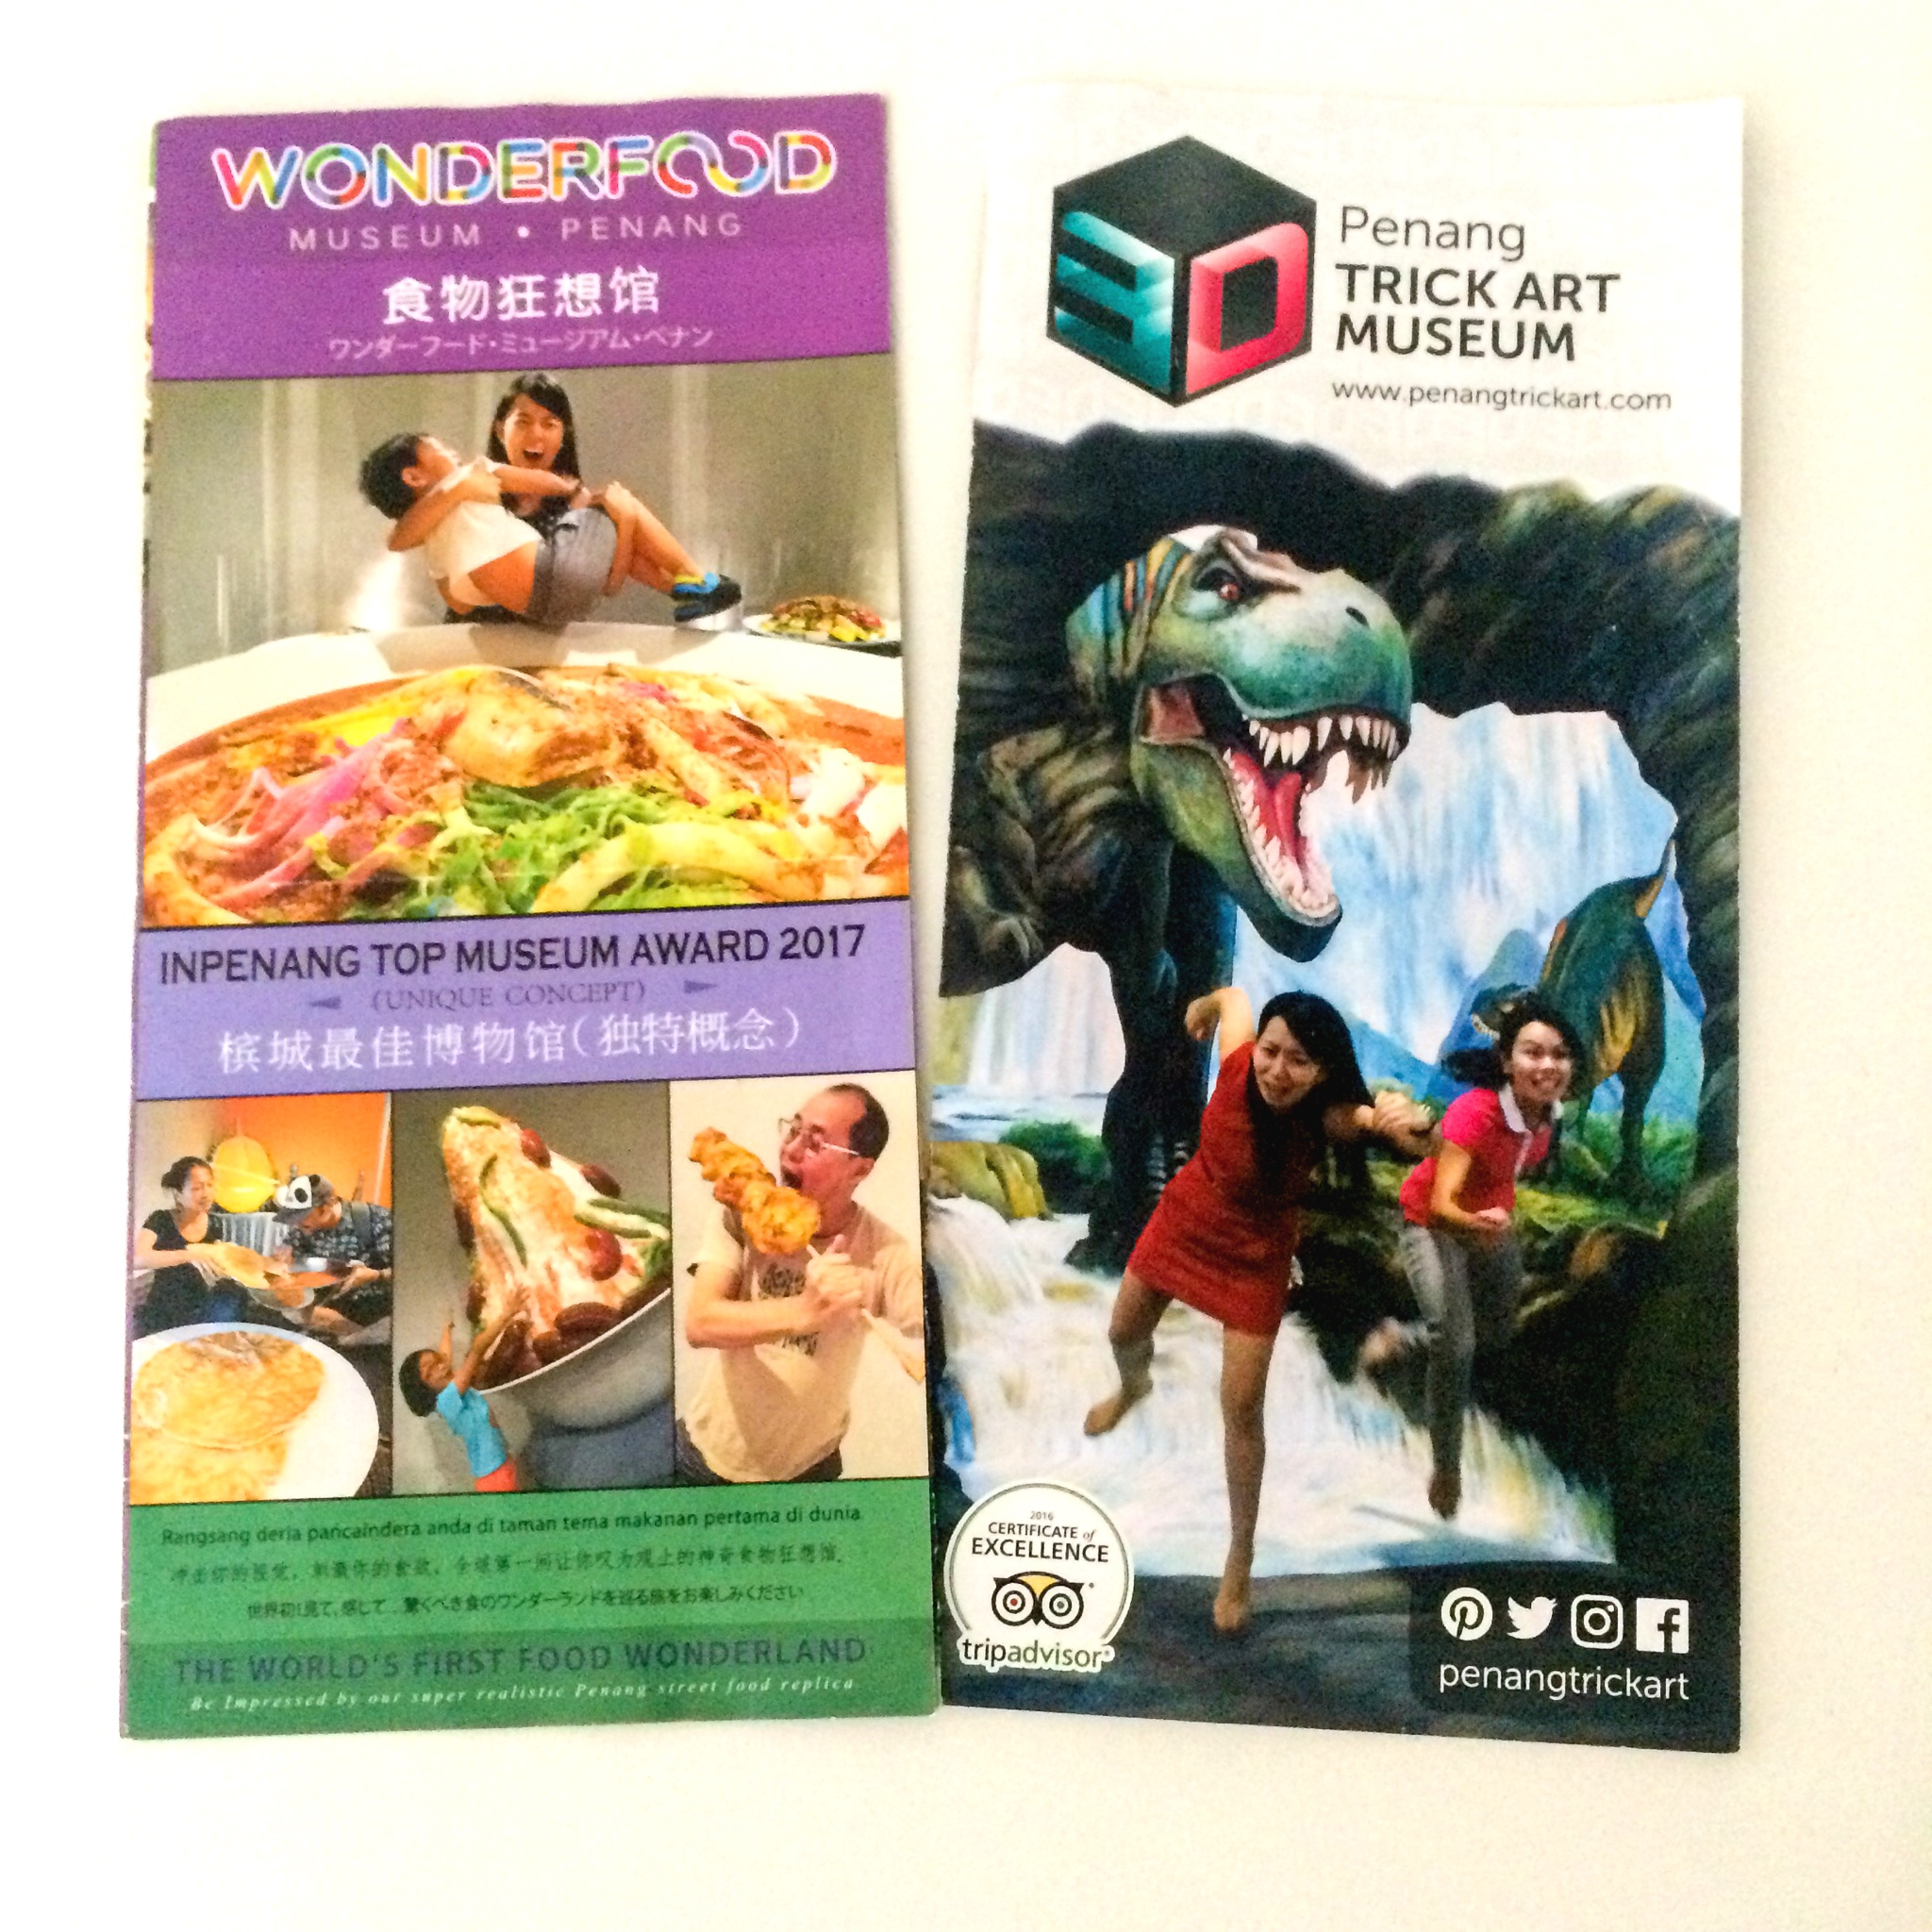 I missed seeing Wonderfood and the Trick Art Museum!